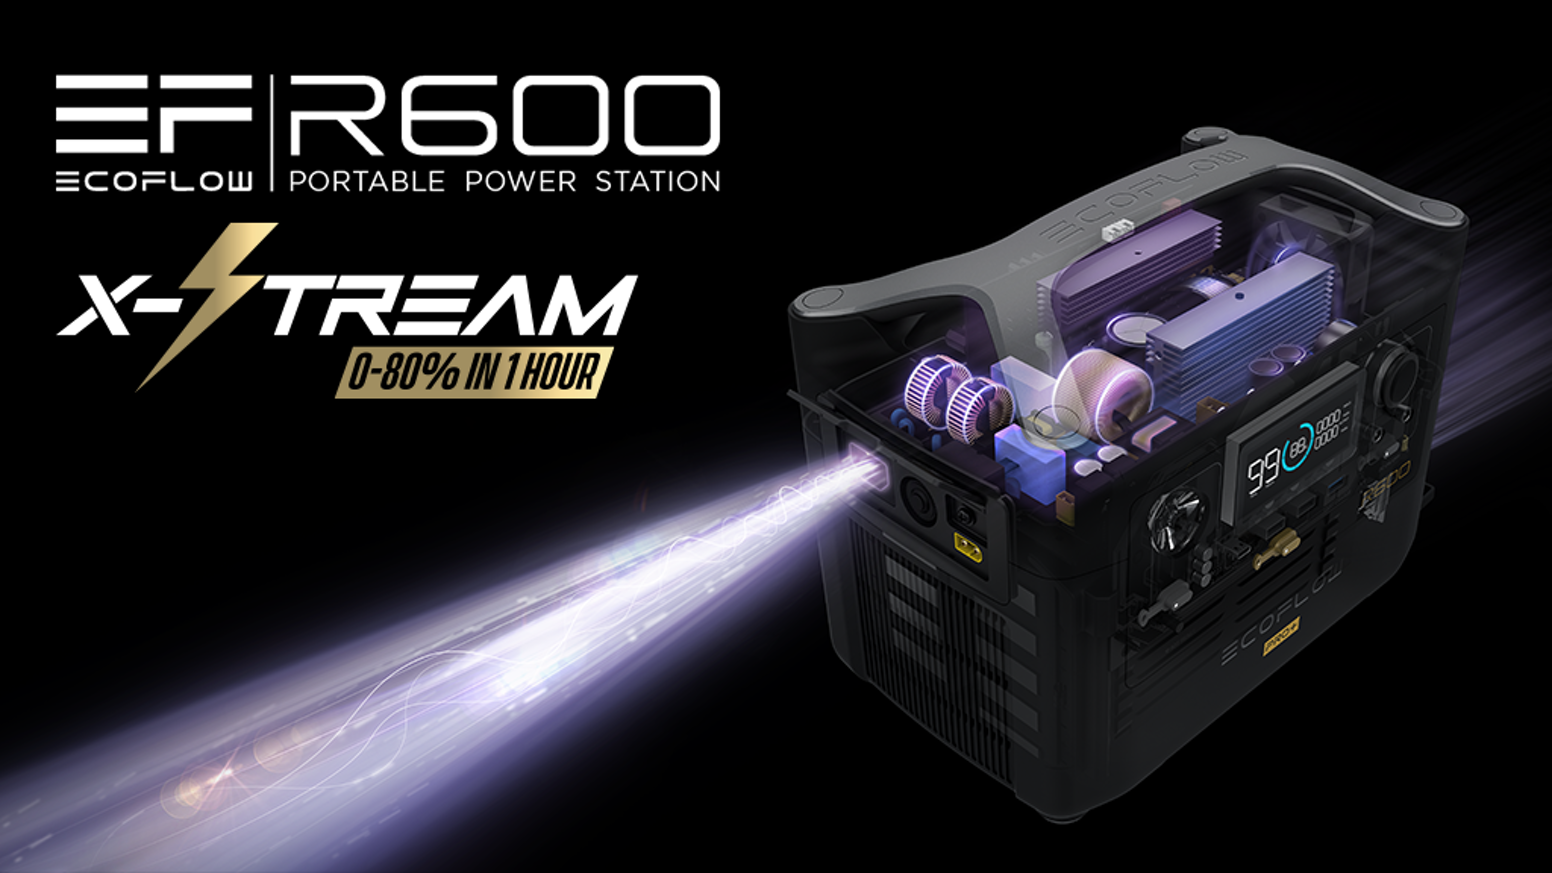 Modular Design for Increased Capacity;  600W Smart Inverter;  Chainable AC Power;  From 0 to 80% in 1 hour;  EcoFlow Mobile App